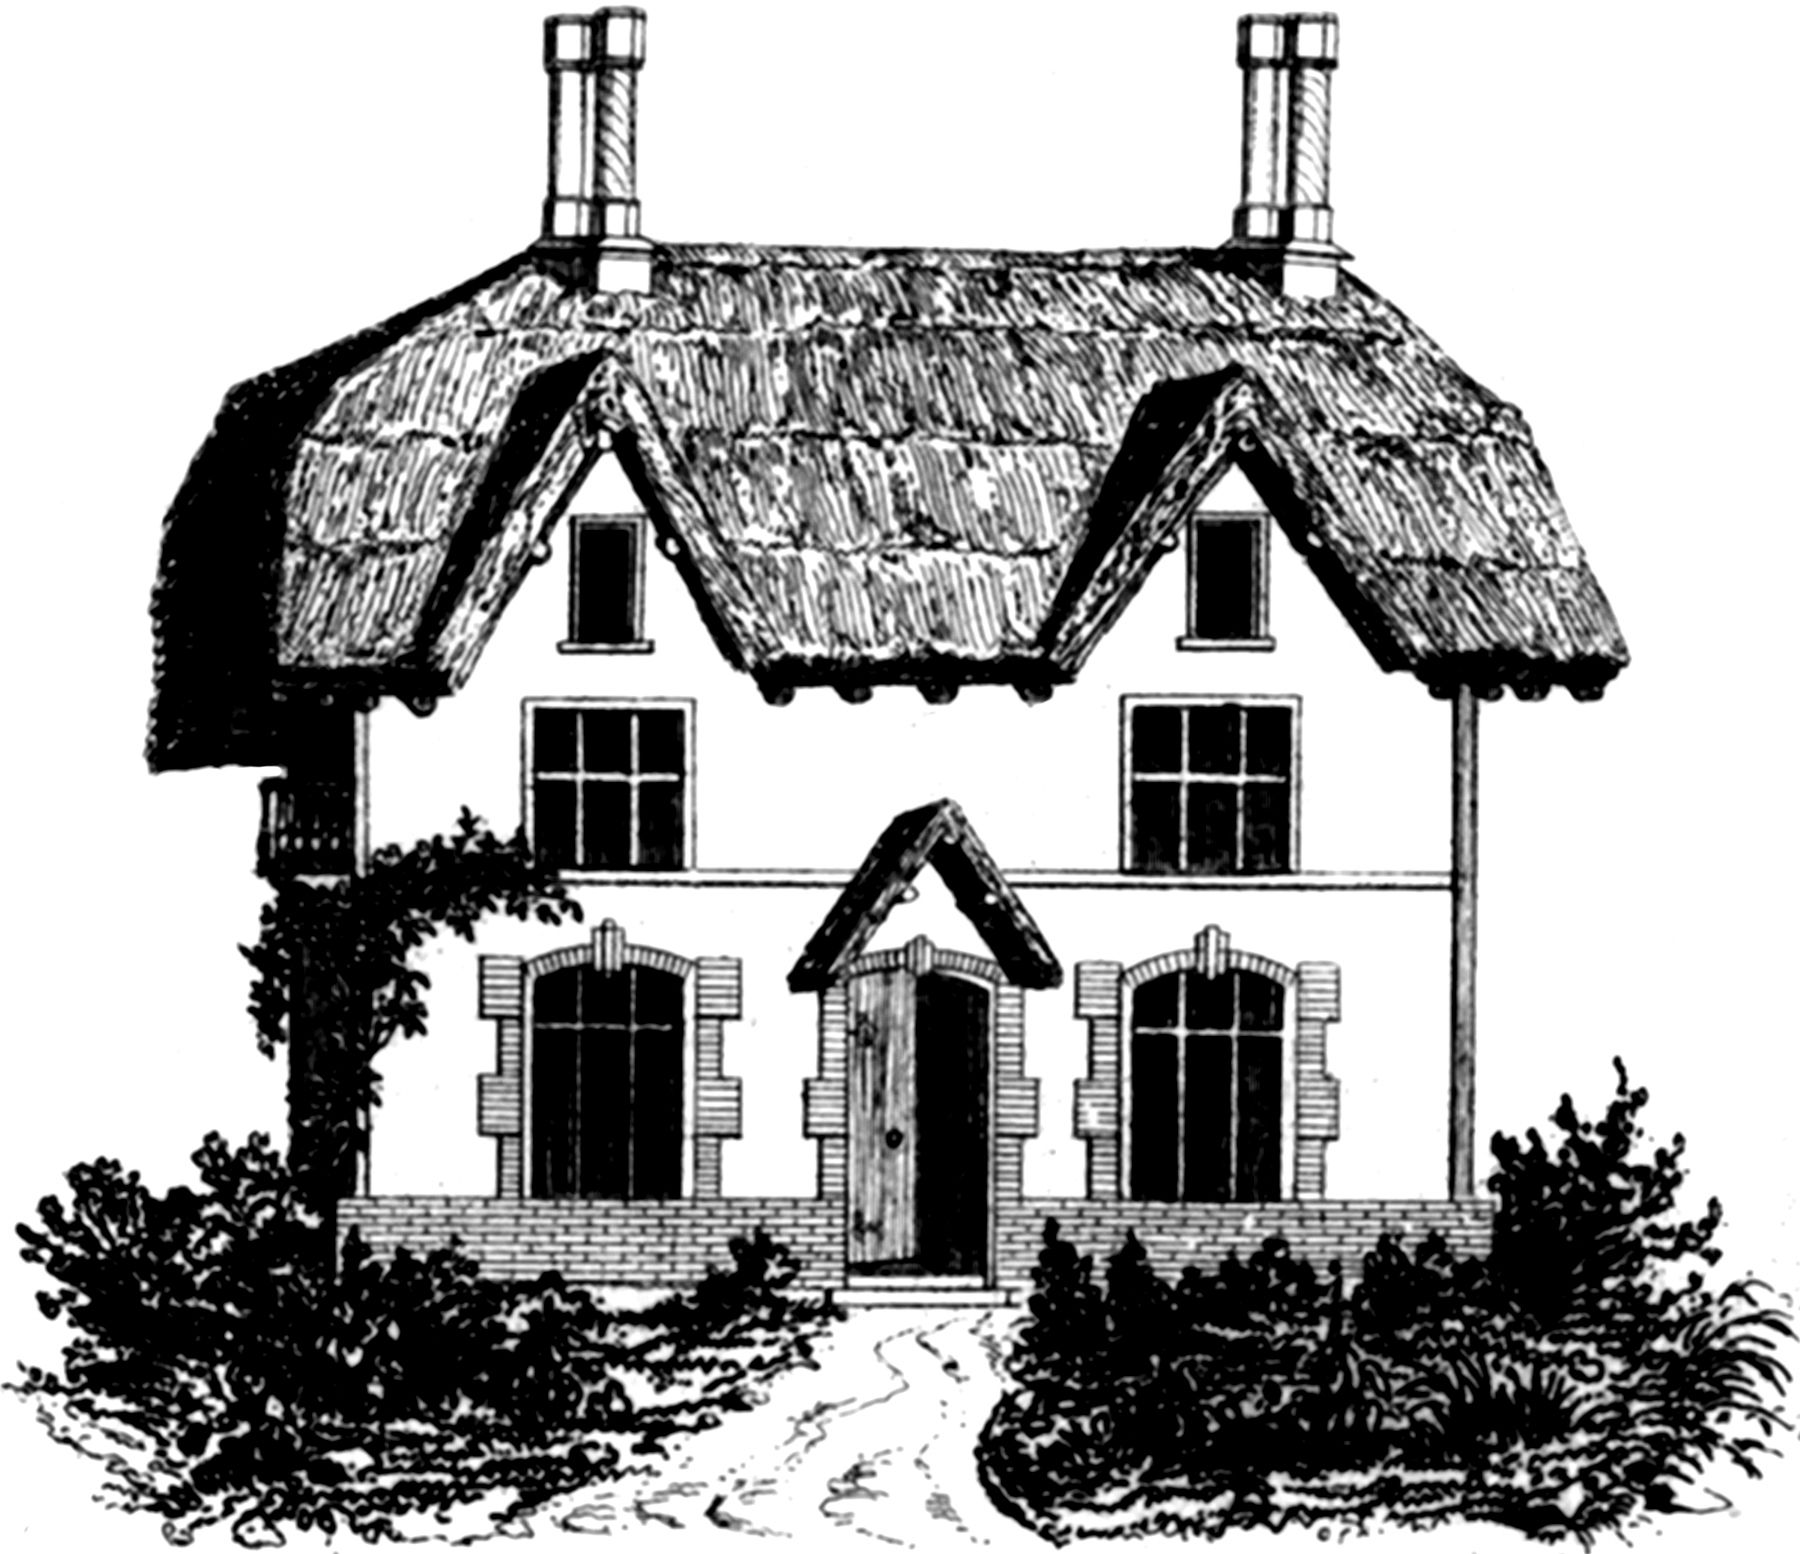 35+ Roof Clipart Black And White